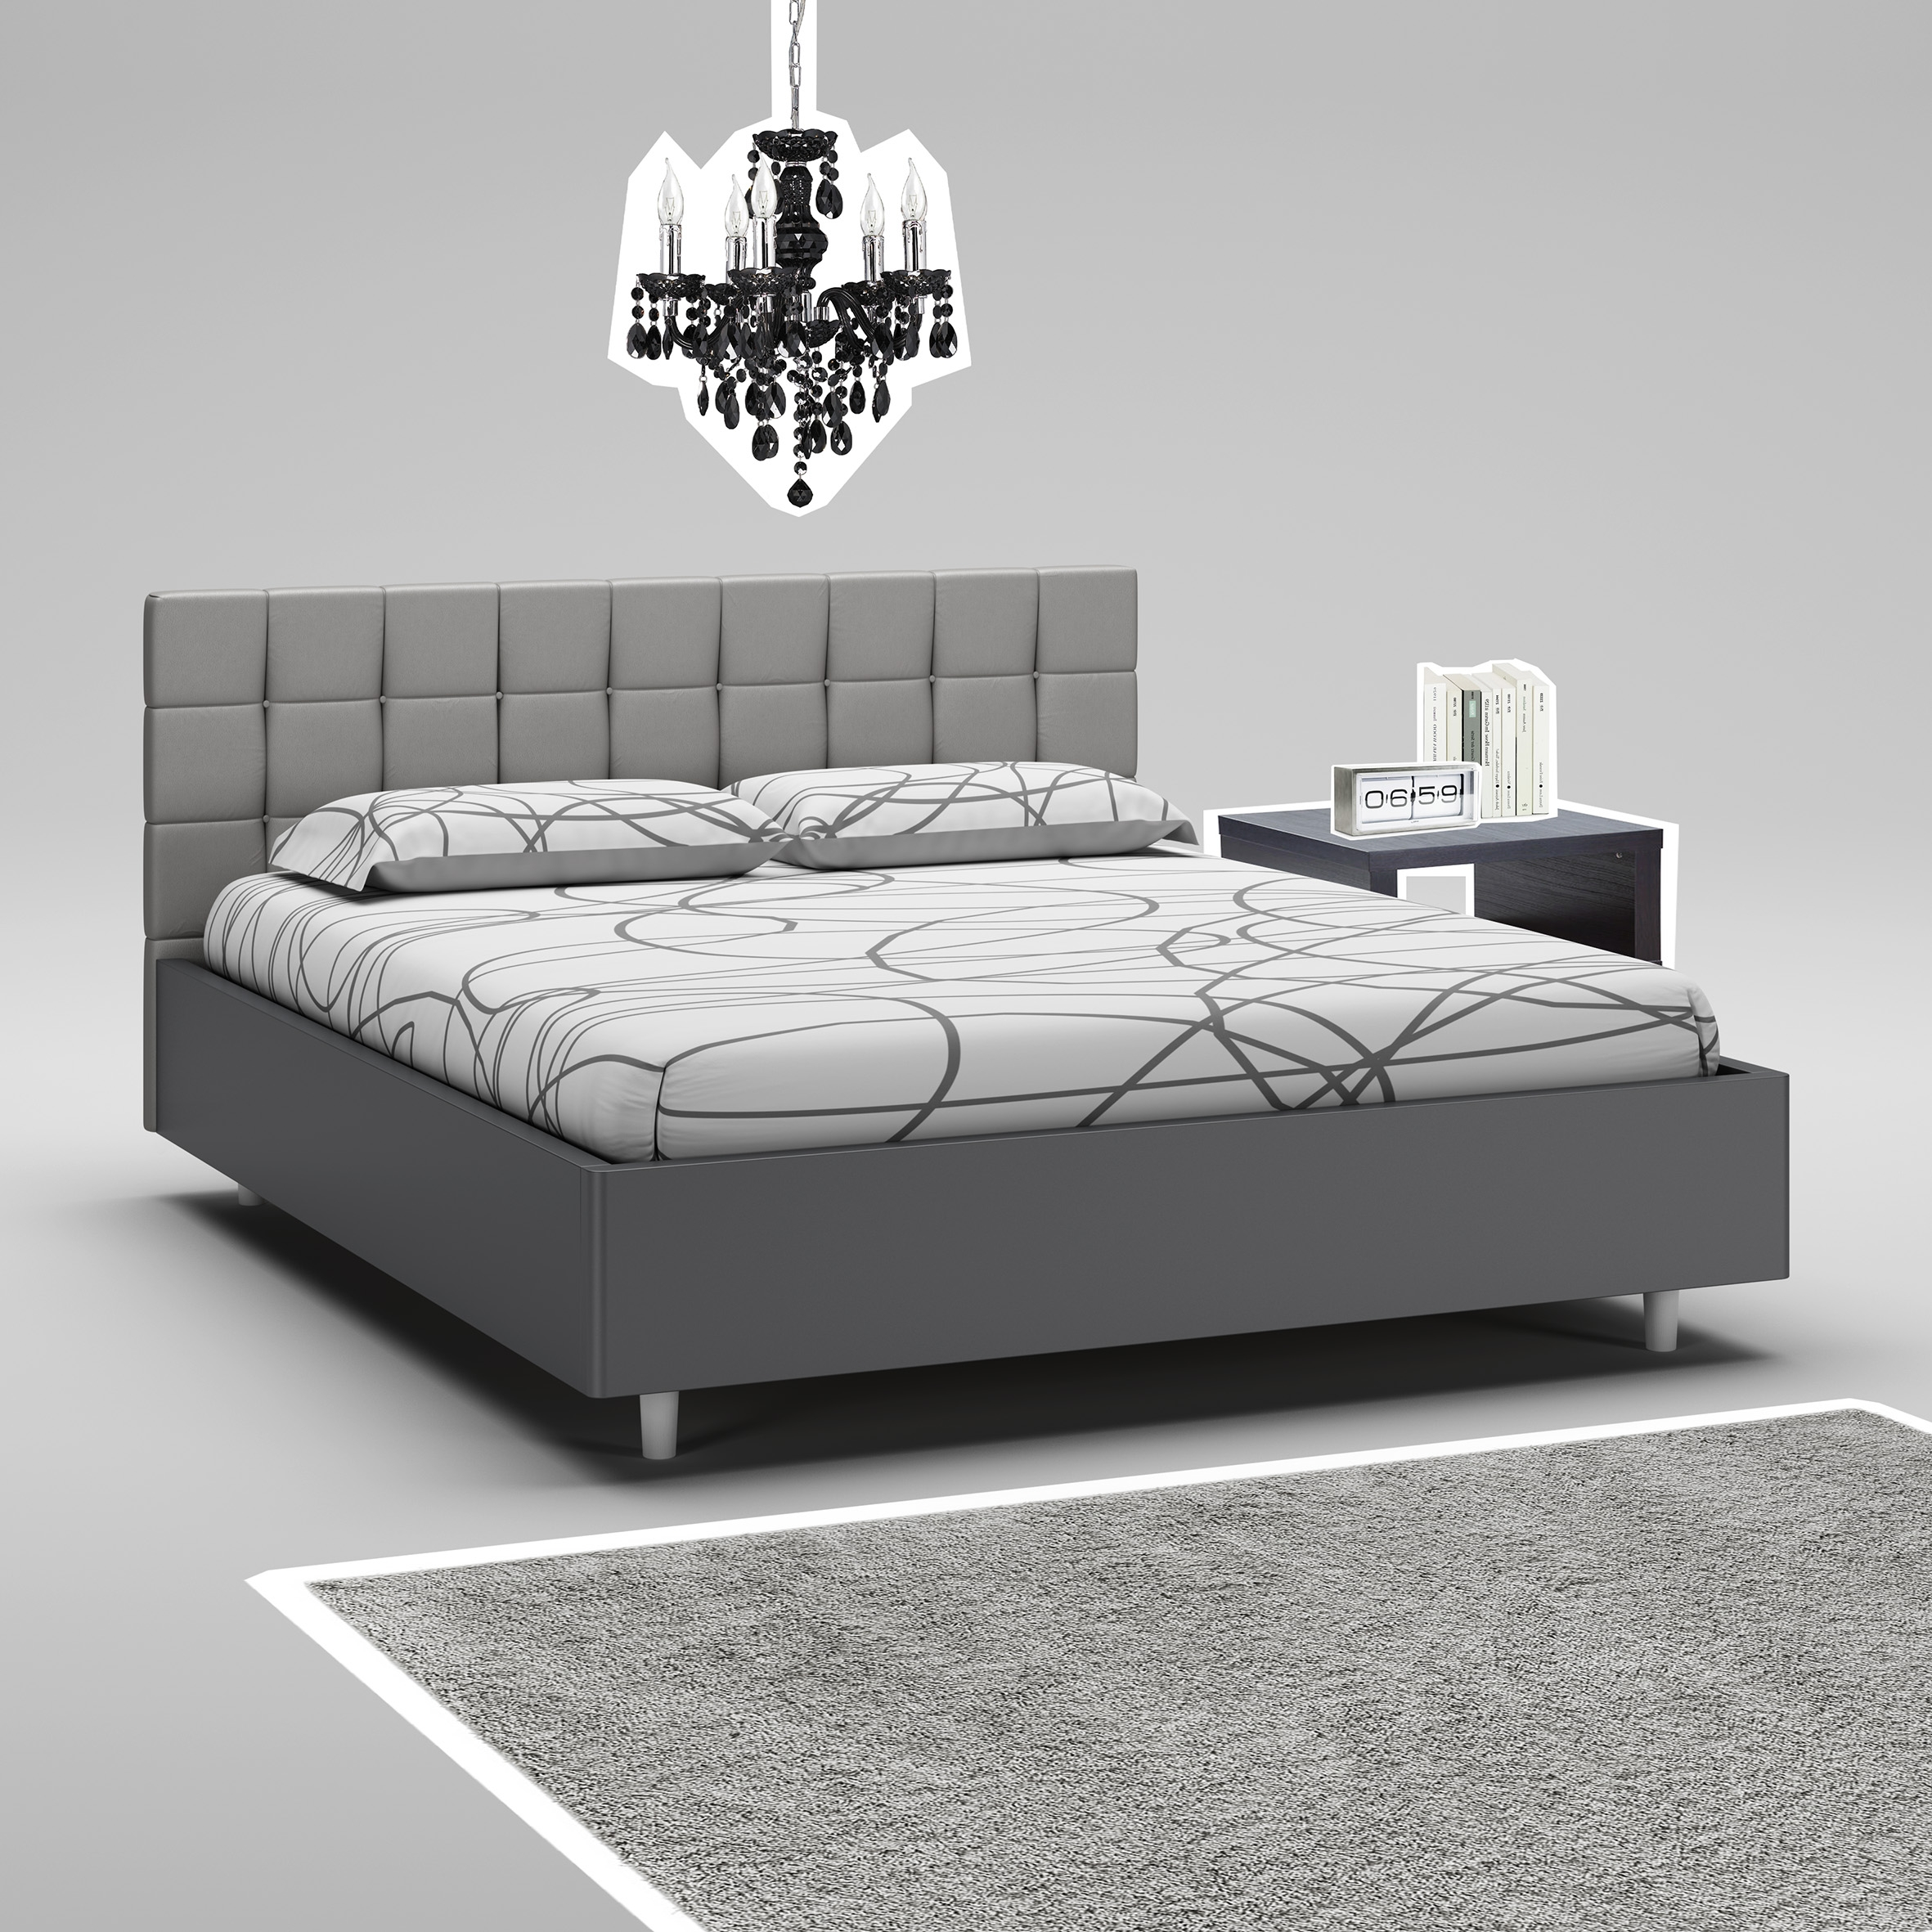 cadre de lit 180x200 avec rangement maison design. Black Bedroom Furniture Sets. Home Design Ideas